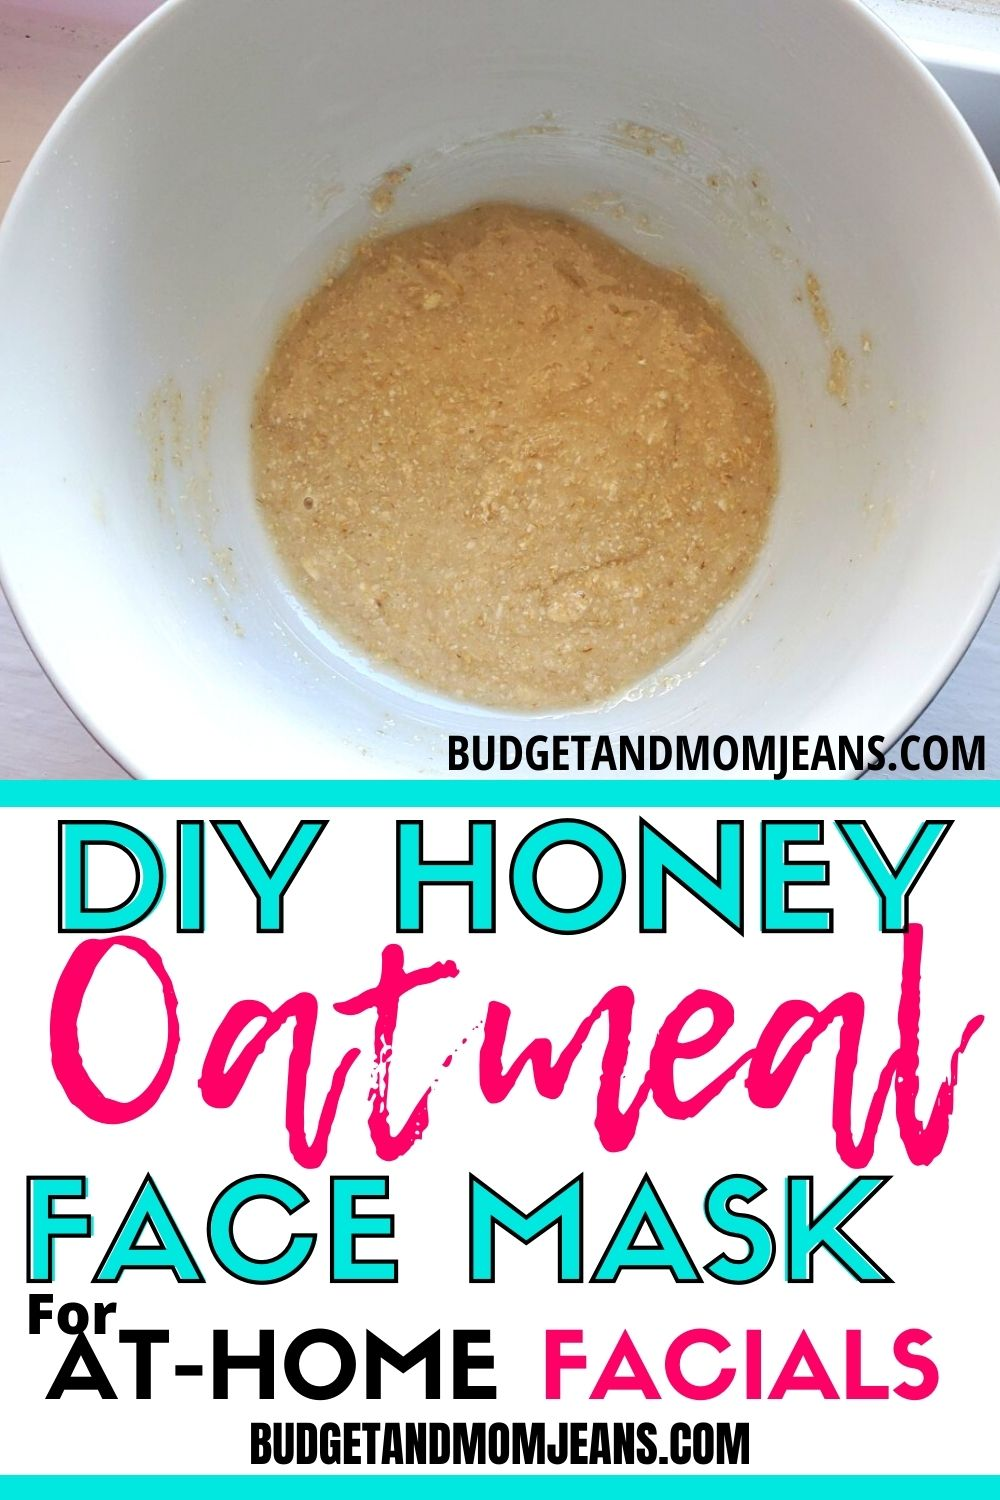 DIY Honey Oatmeal Face Mask For At-home Facials